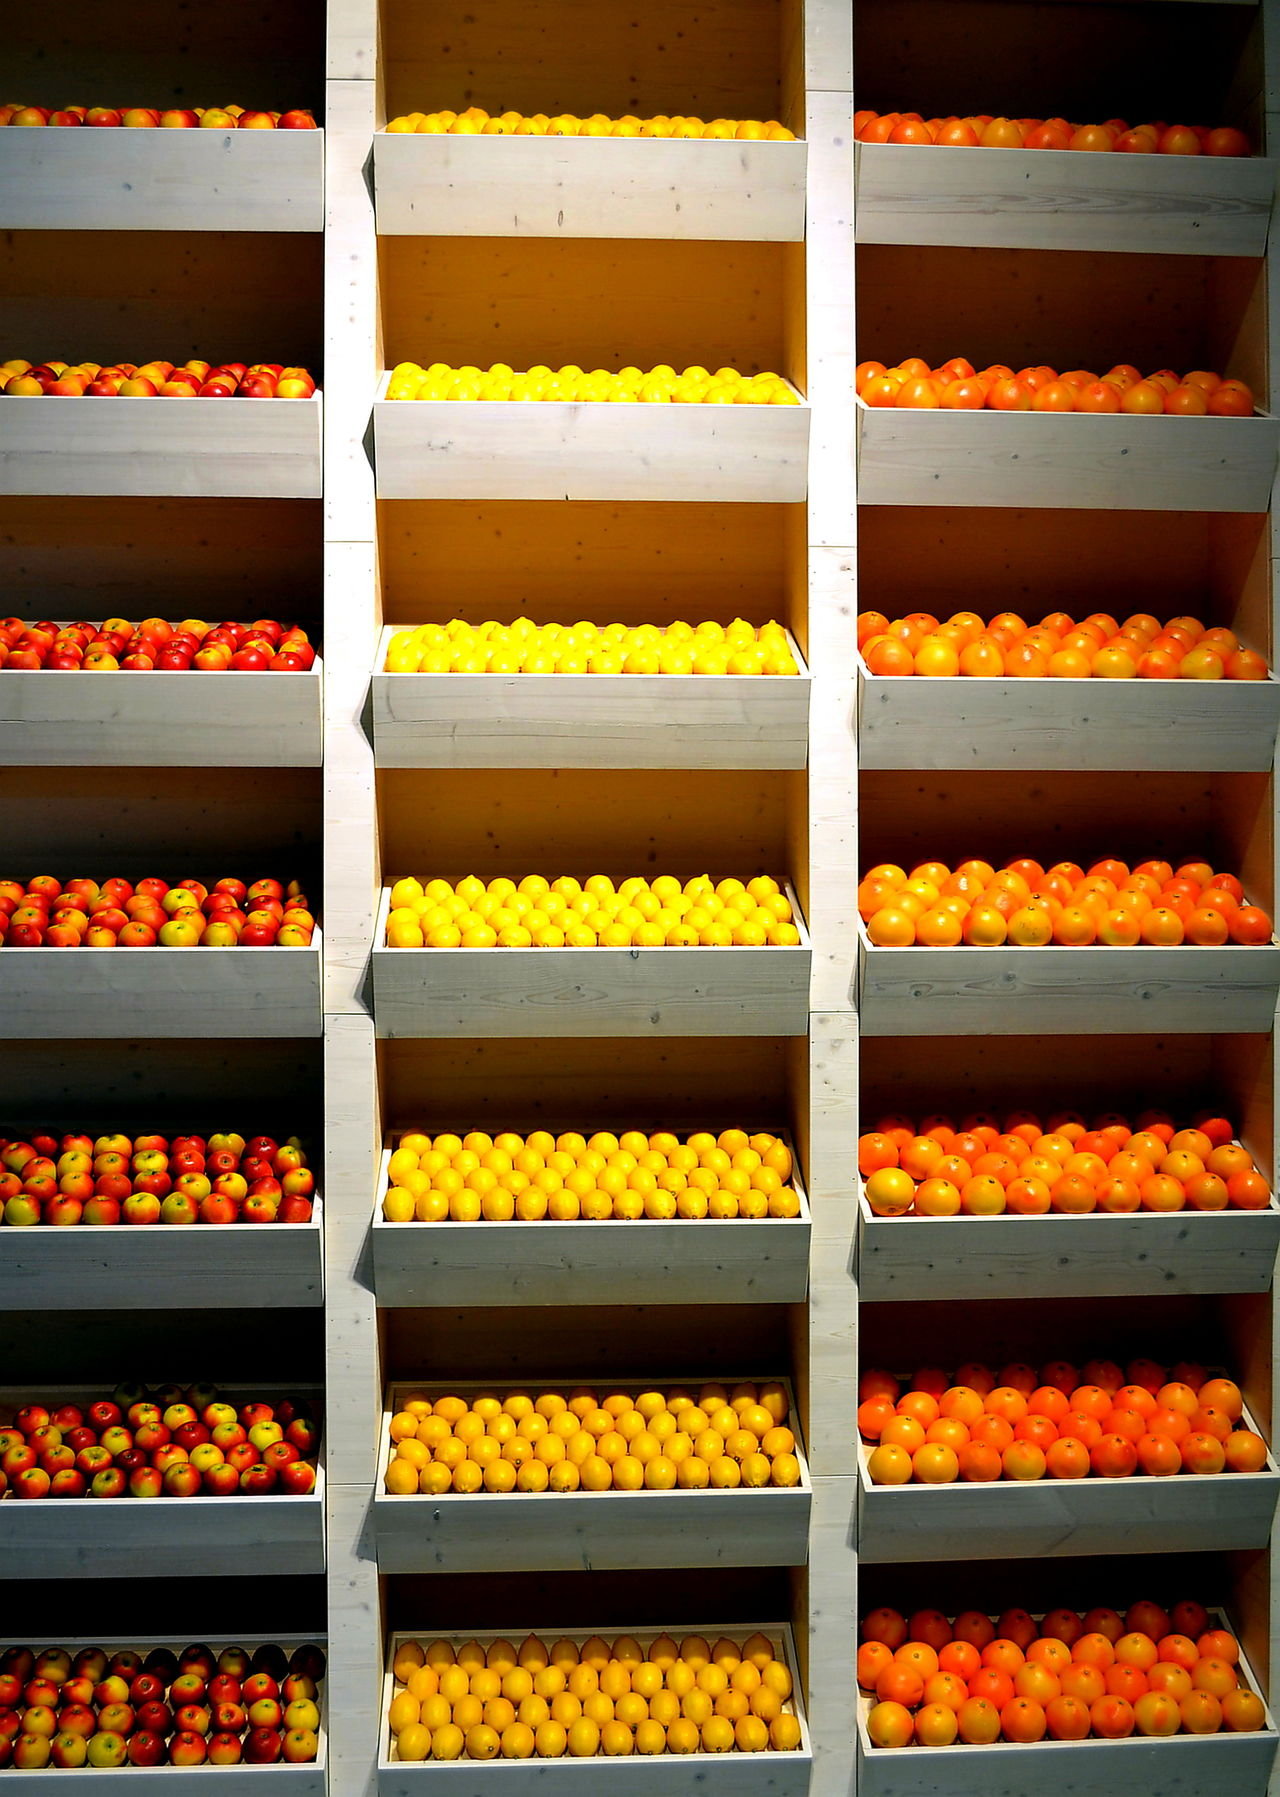 Beautifully Organized Fruits Yellow Food Colour Of Life No People Freshness Regale Regale Orange Zitrone Lemon Apple Shelves